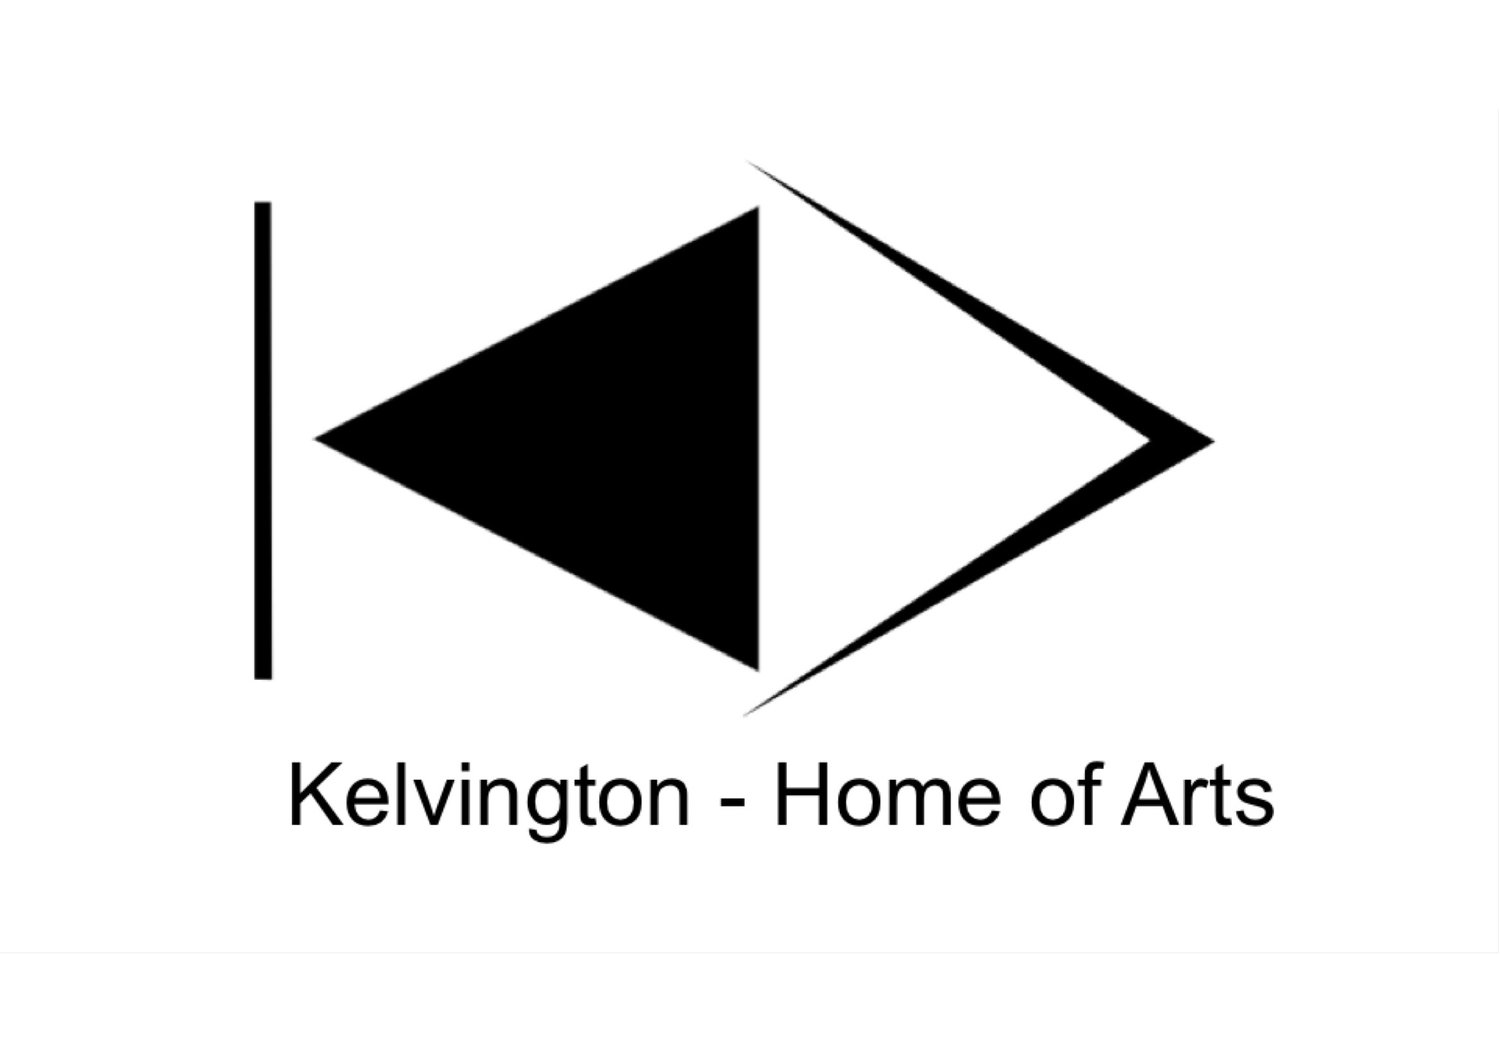 Kelvington - Home of Arts